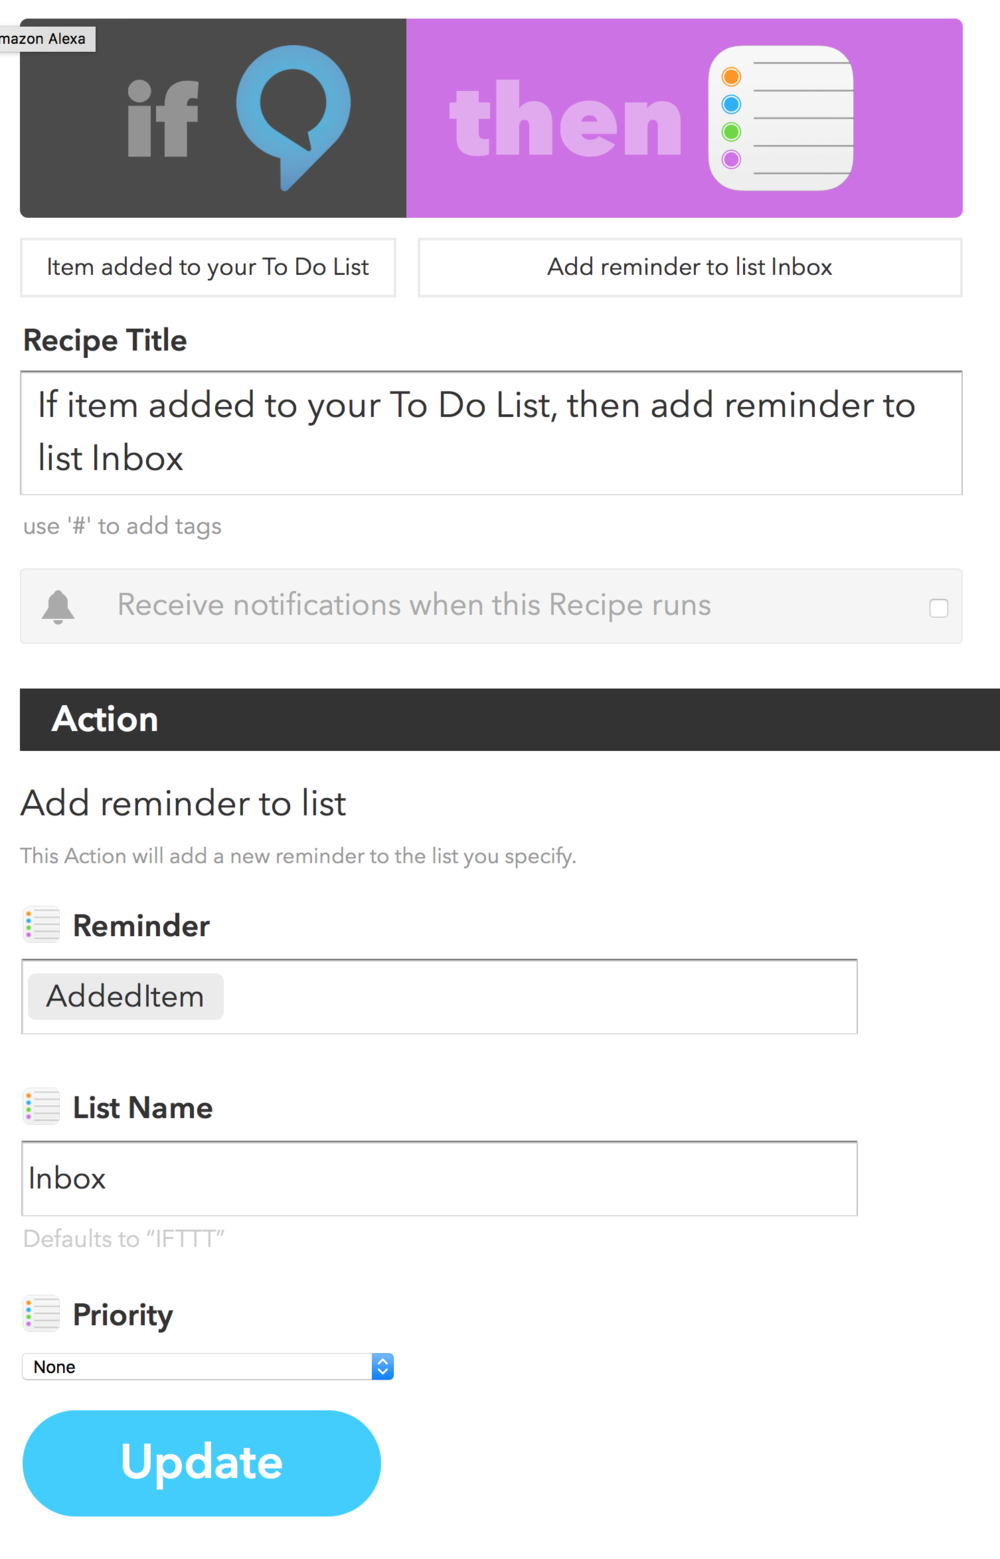 Moving Alexa To Dos to Apple Reminders via IFTTT